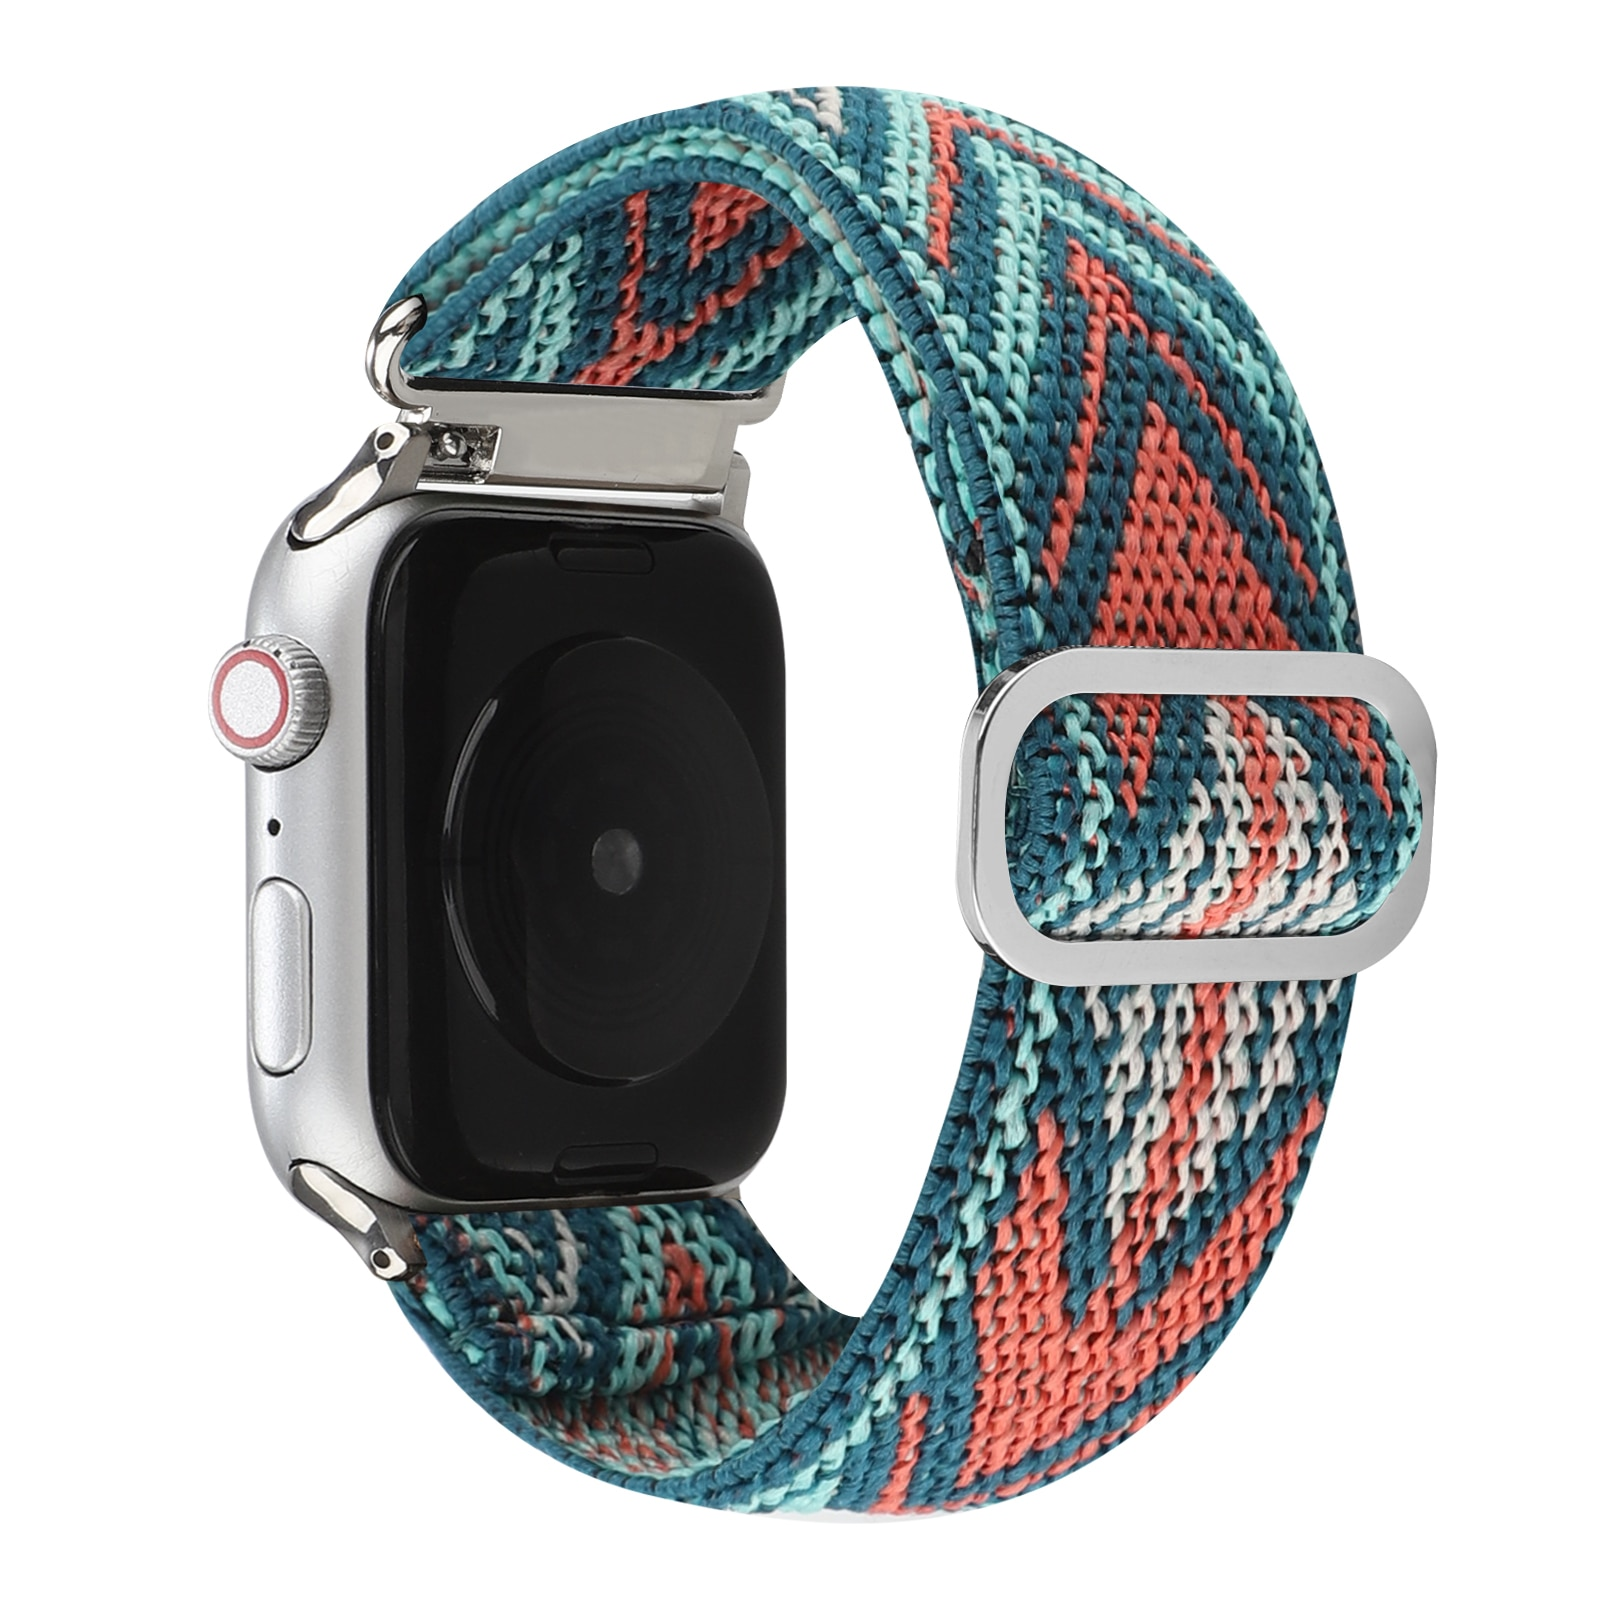 Sports Solo Loop Band for Apple Watch Series 6 SE 5 4 3 Elastic iwatch 38mm 40mm 42mm 44mm Correa Solo Belt Adjustable.